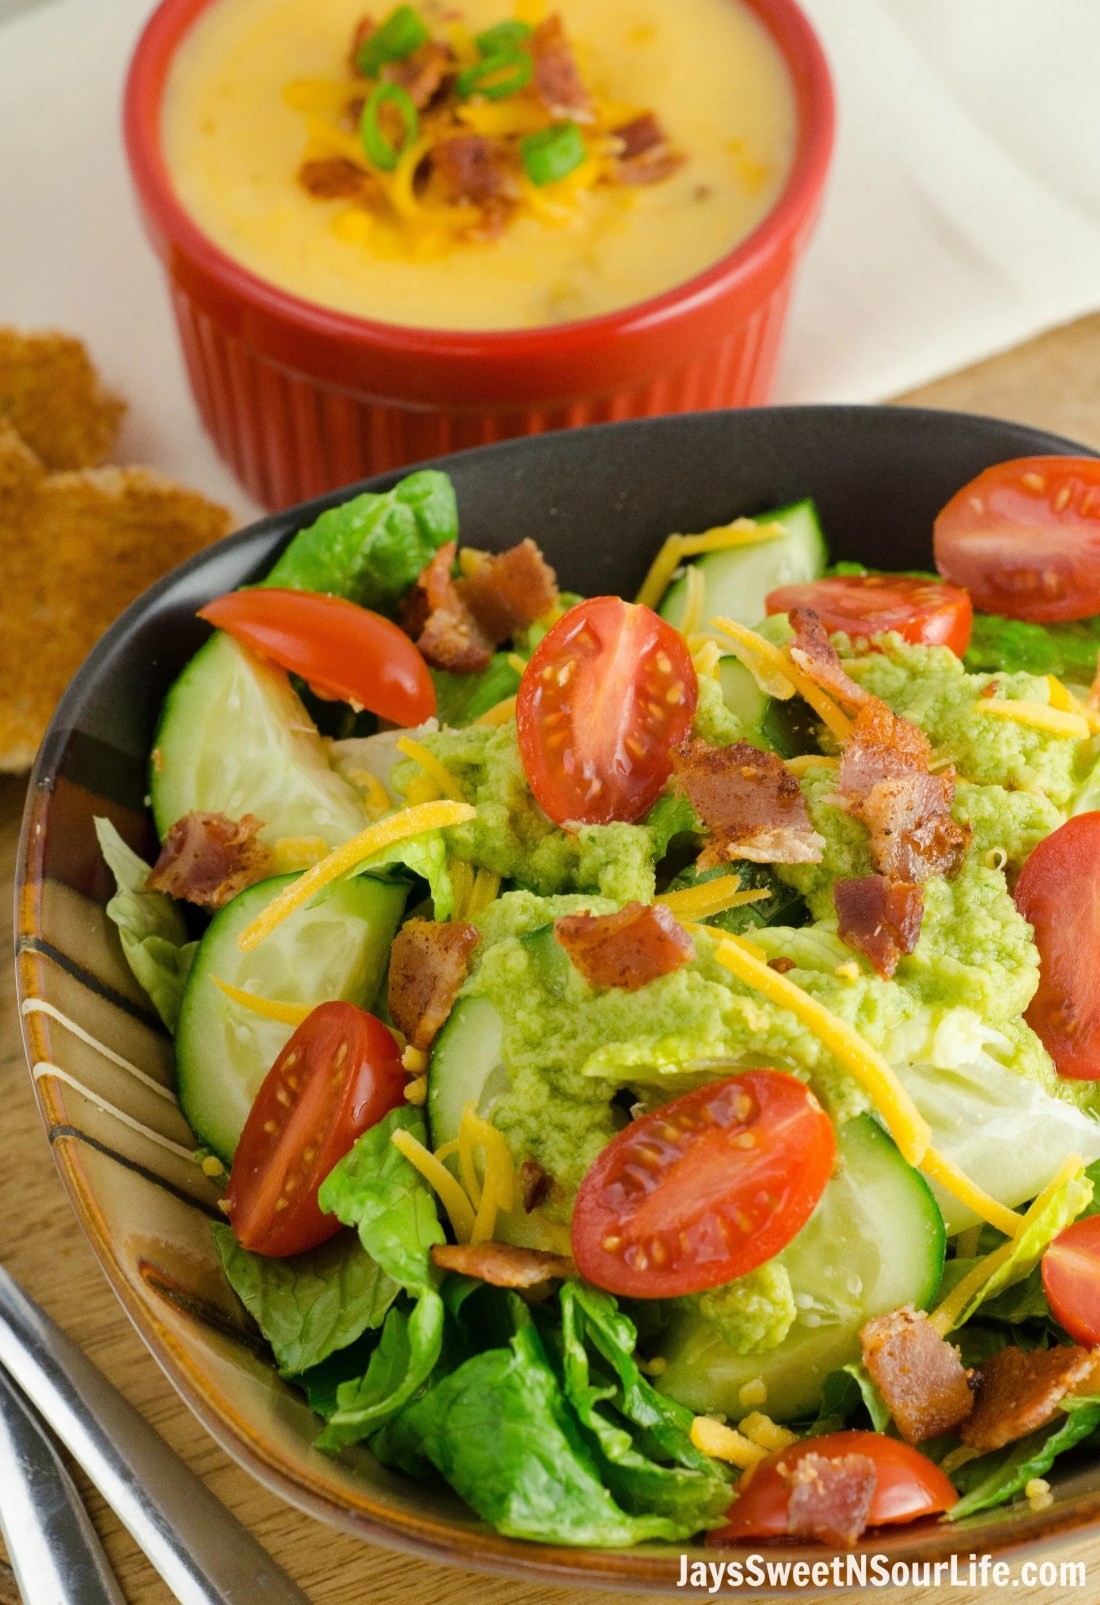 Simple and easy to make avocado vinaigrette dressing for a simple side salad.